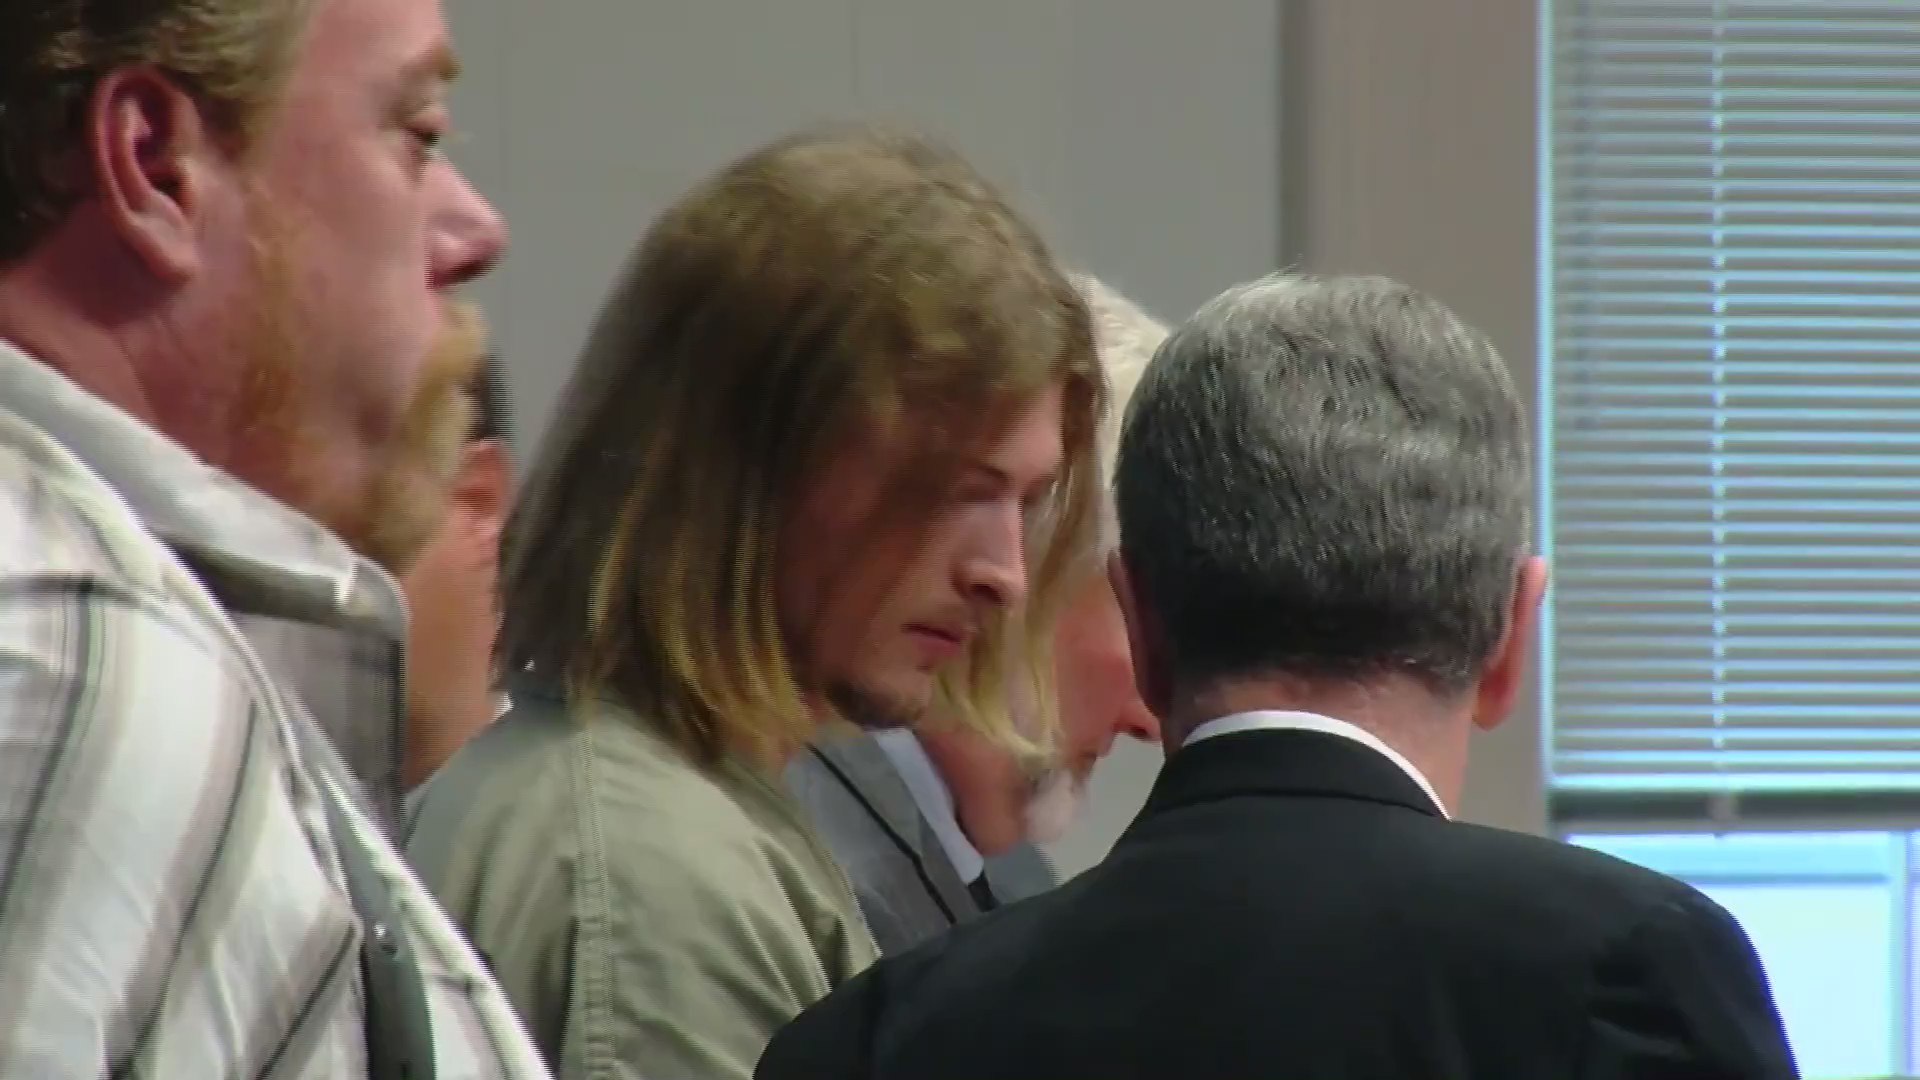 Jake Wagner appears in court for arraignment